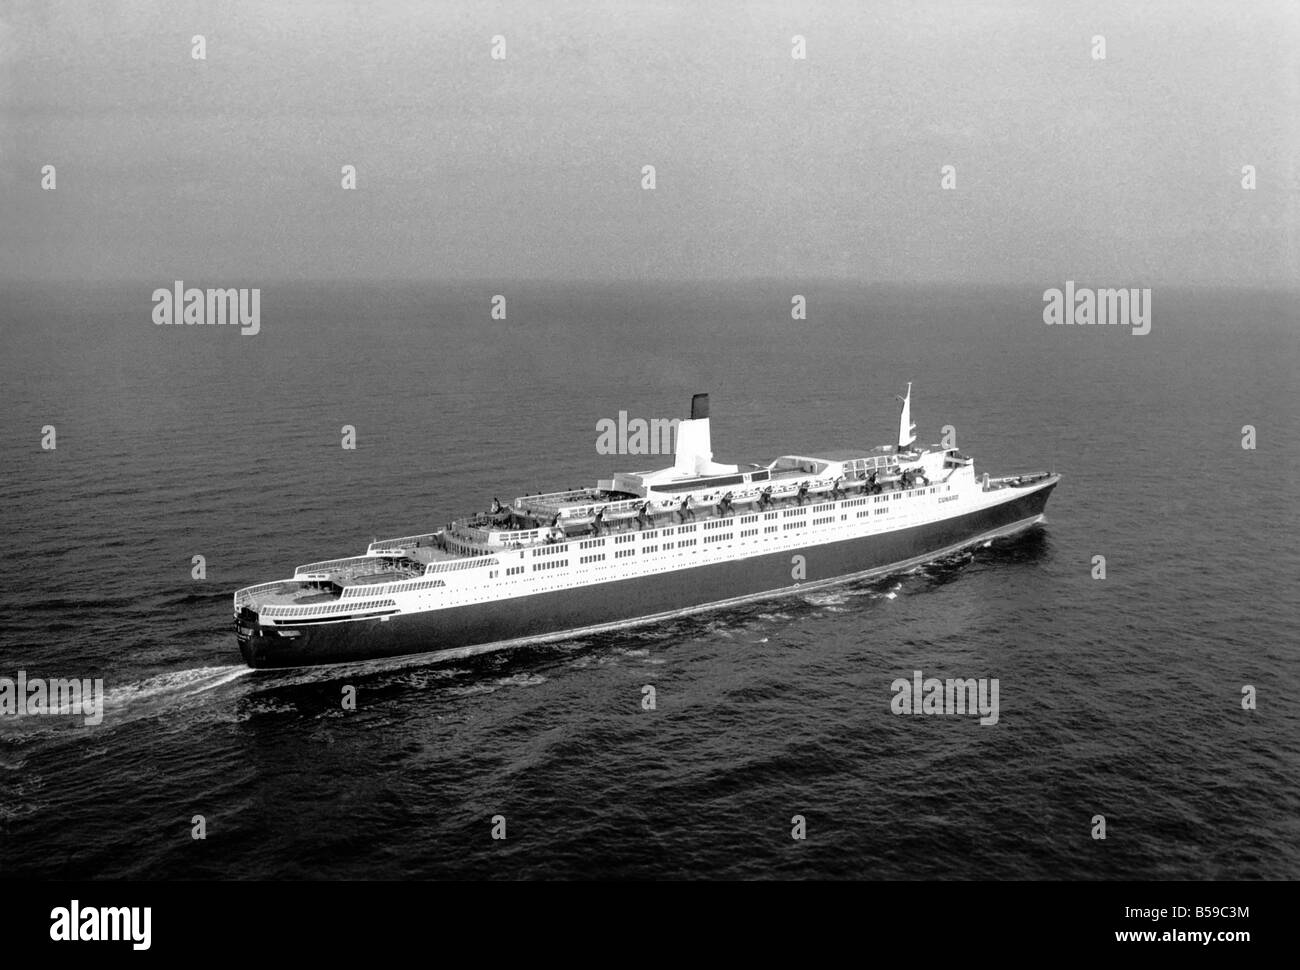 The QE2 Returns. The QE2 returned to Southampton today after a fantastically successful round-the-world crise. In - Stock Image